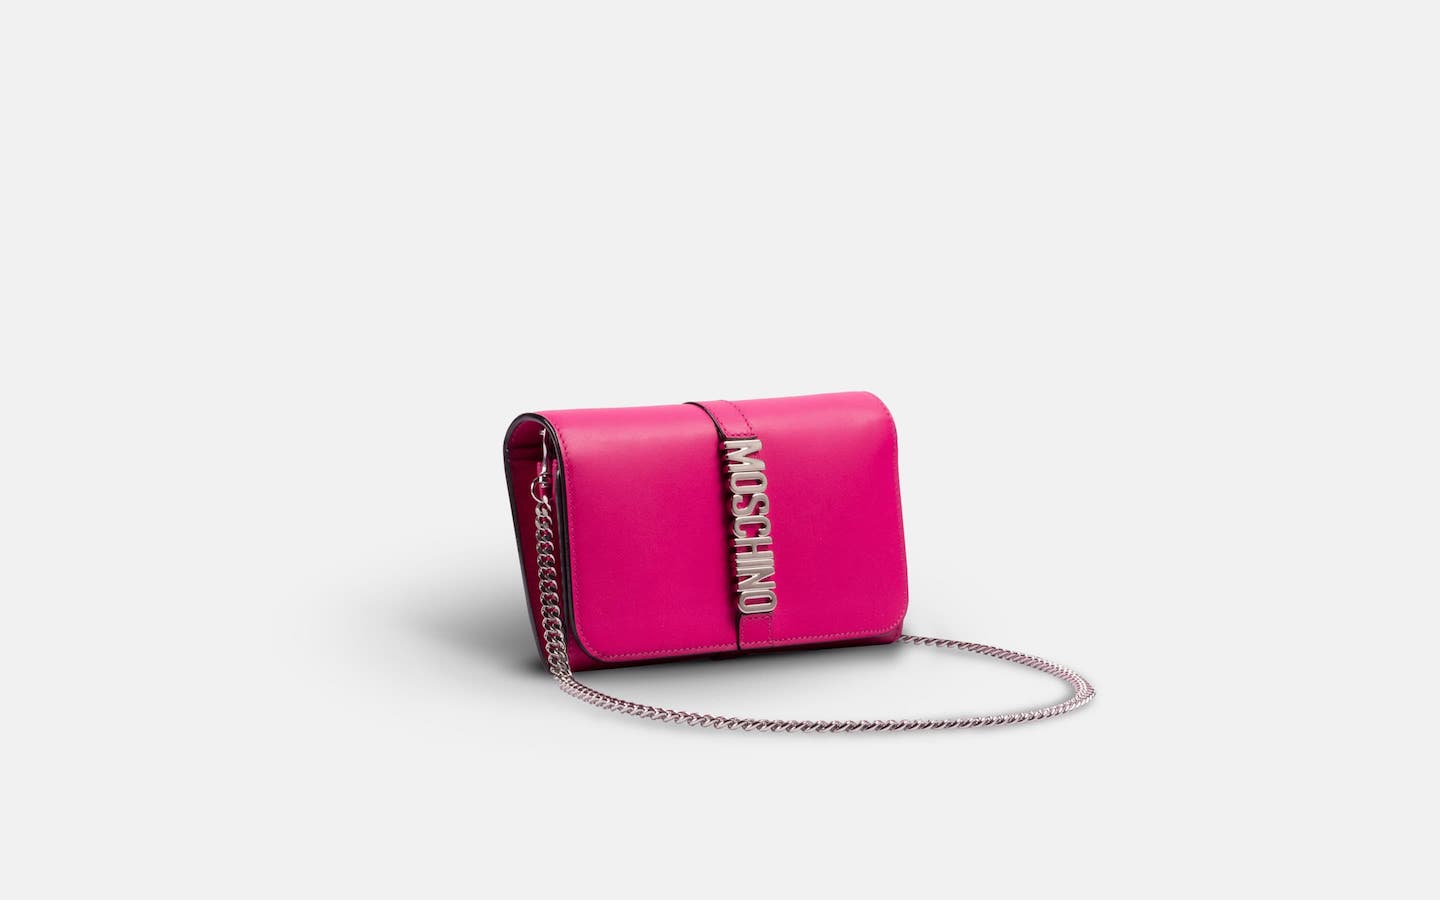 Moschino_Letters__Shoulder_Bag_Pink_Clutch_Angle_Chain-min